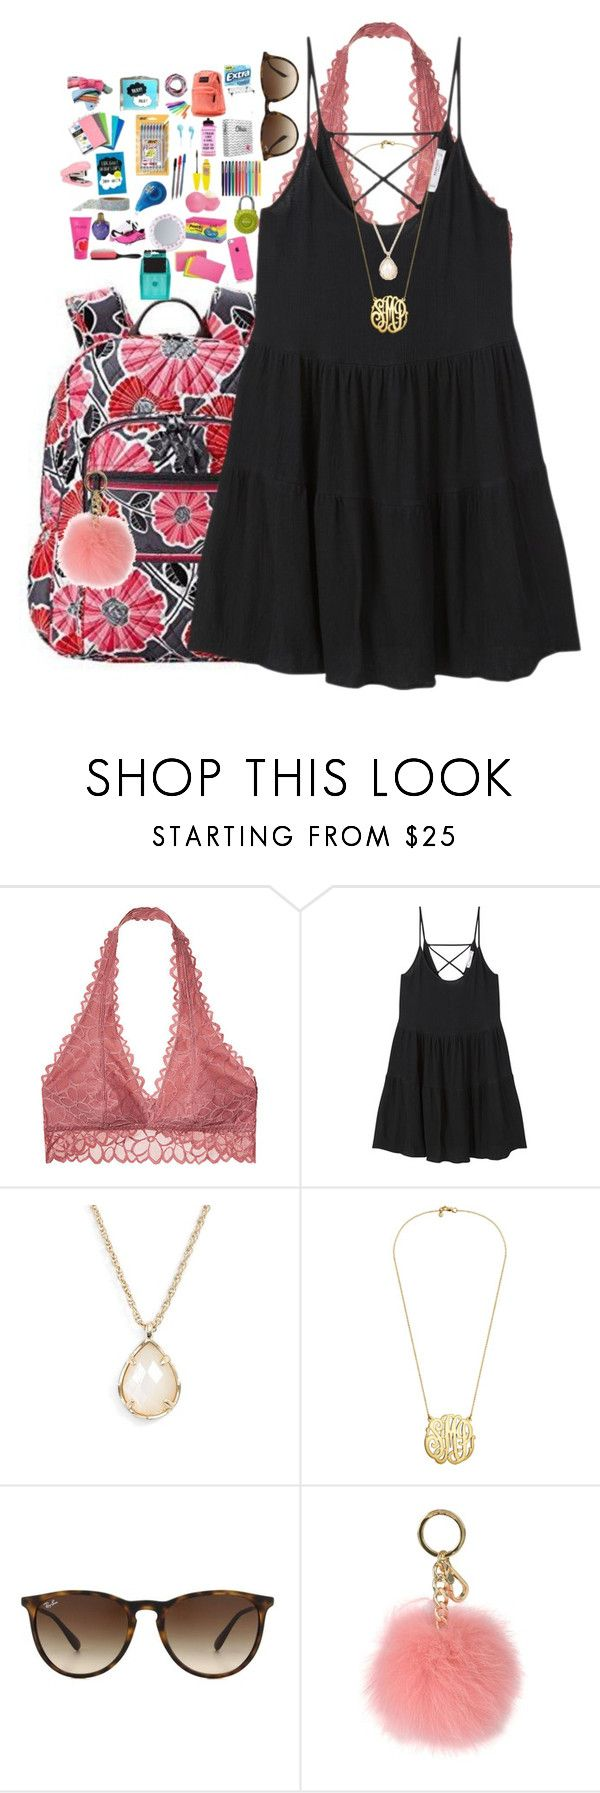 """""""what's in my backpack?"""" by southernsophia ❤ liked on Polyvore featuring Vera Bradley, Victoria's Secret, MANGO, Kendra Scott, Ray-Ban and MICHAEL Michael Kors"""